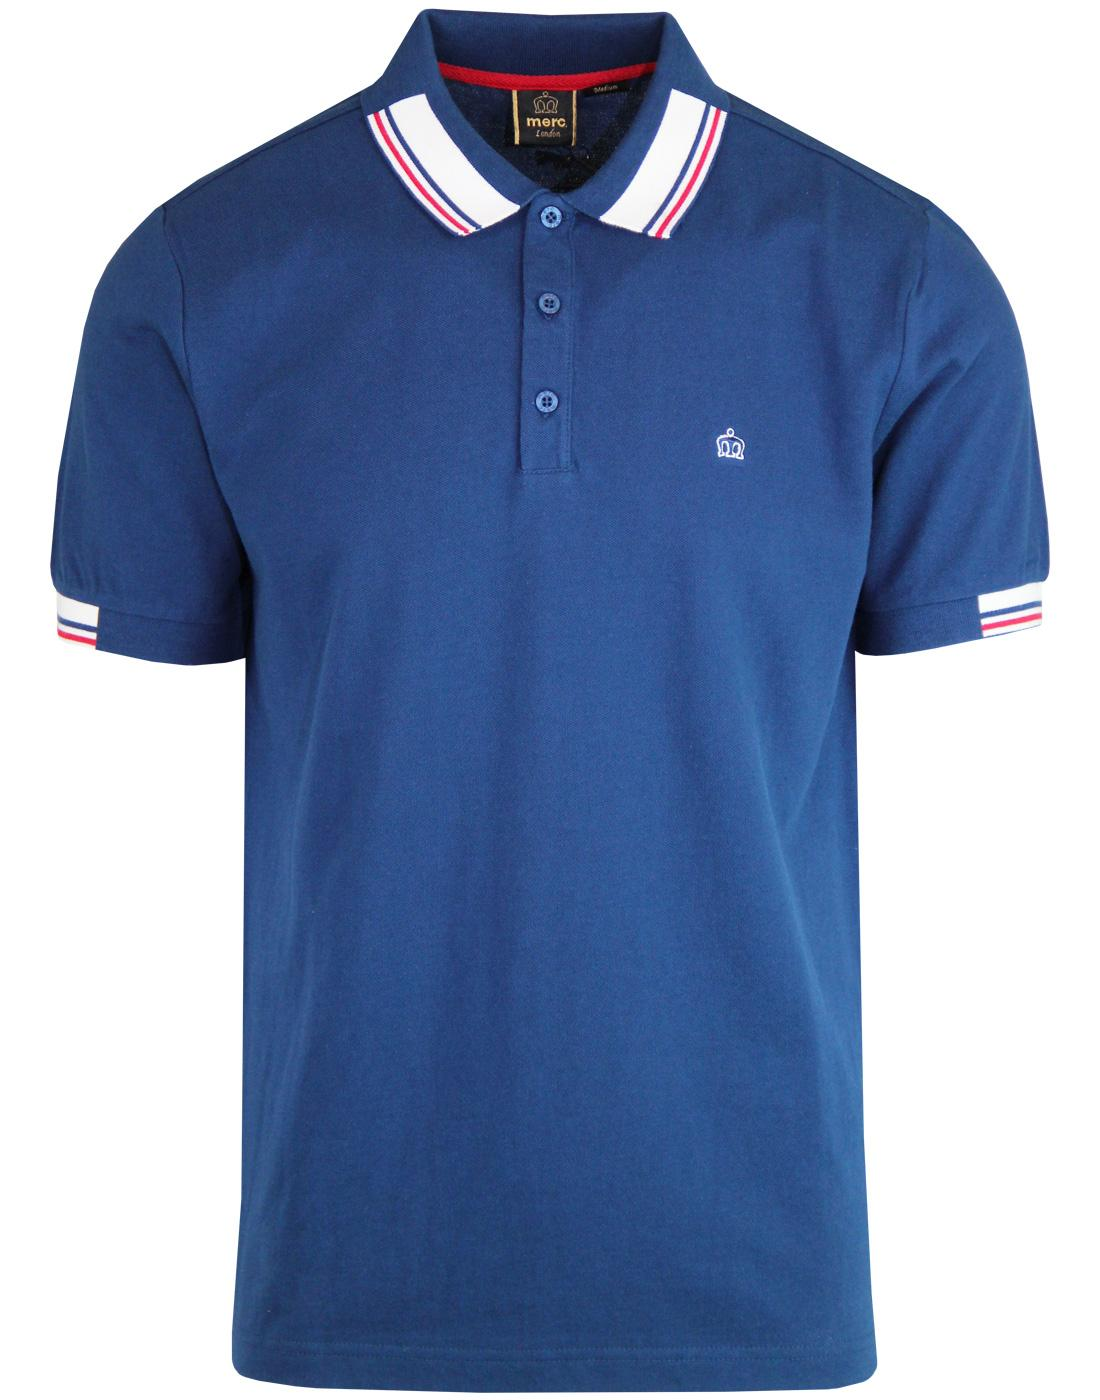 Brigade MERC Retro Mod Stripe Collar Polo Shirt